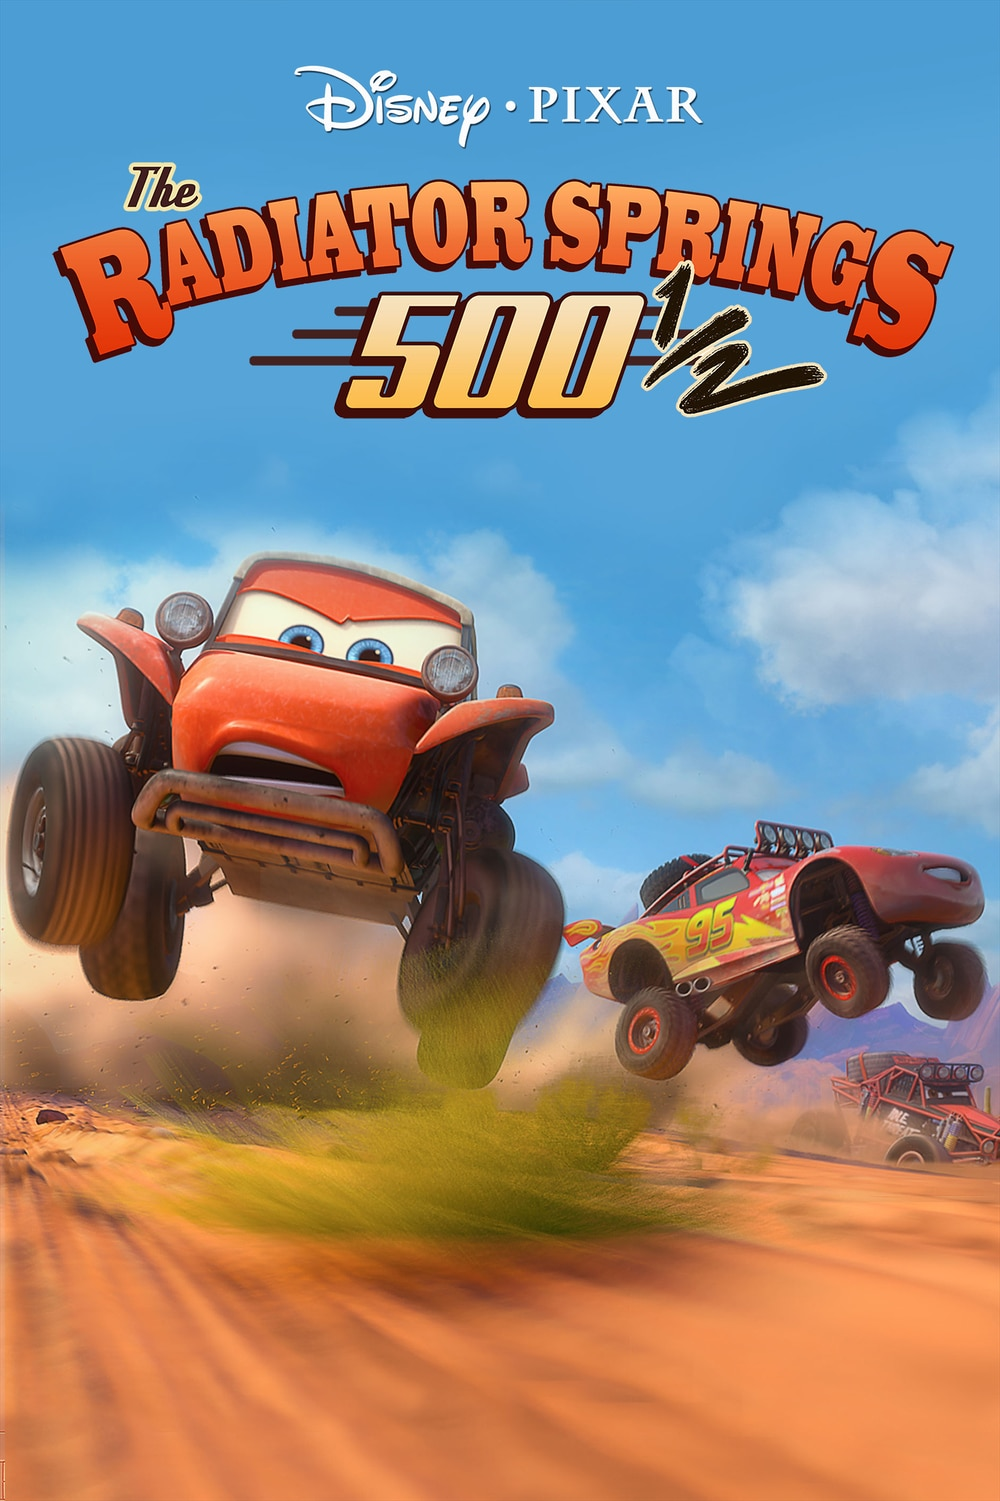 Cars Toon Radiator Springs 500 1 2 Disneylife